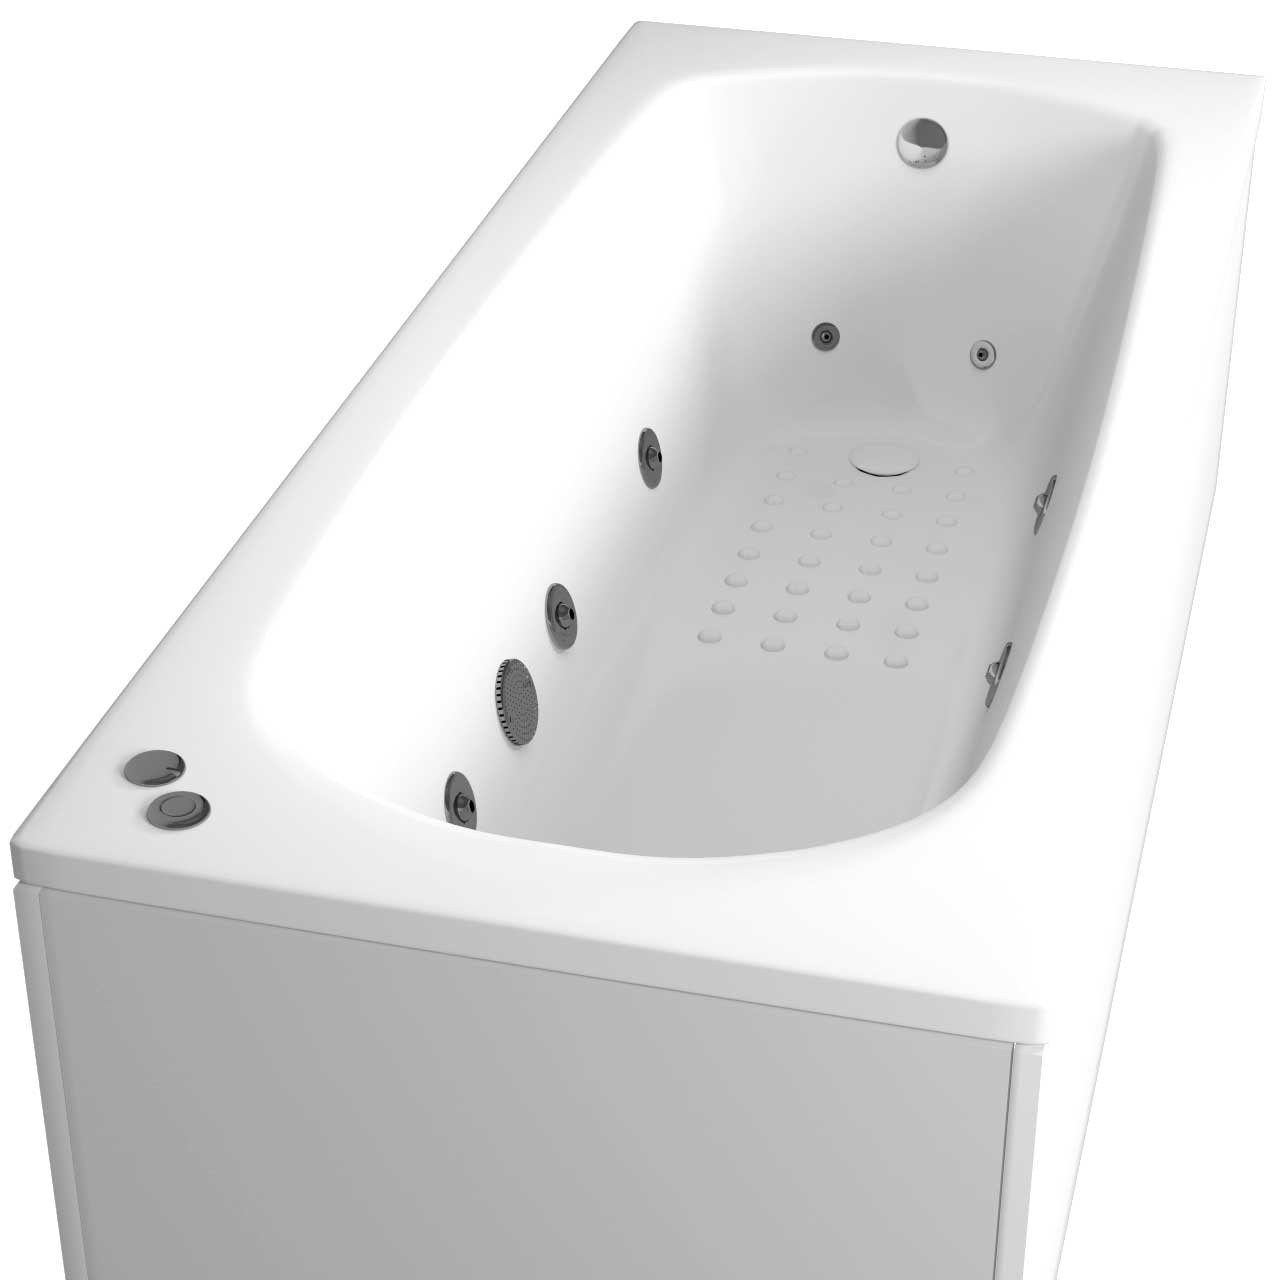 Monte Carlo Anti Slip Textured Base End Tap 12 Jet Chrome V-Tec Whirlpool Bath 1700x700mm